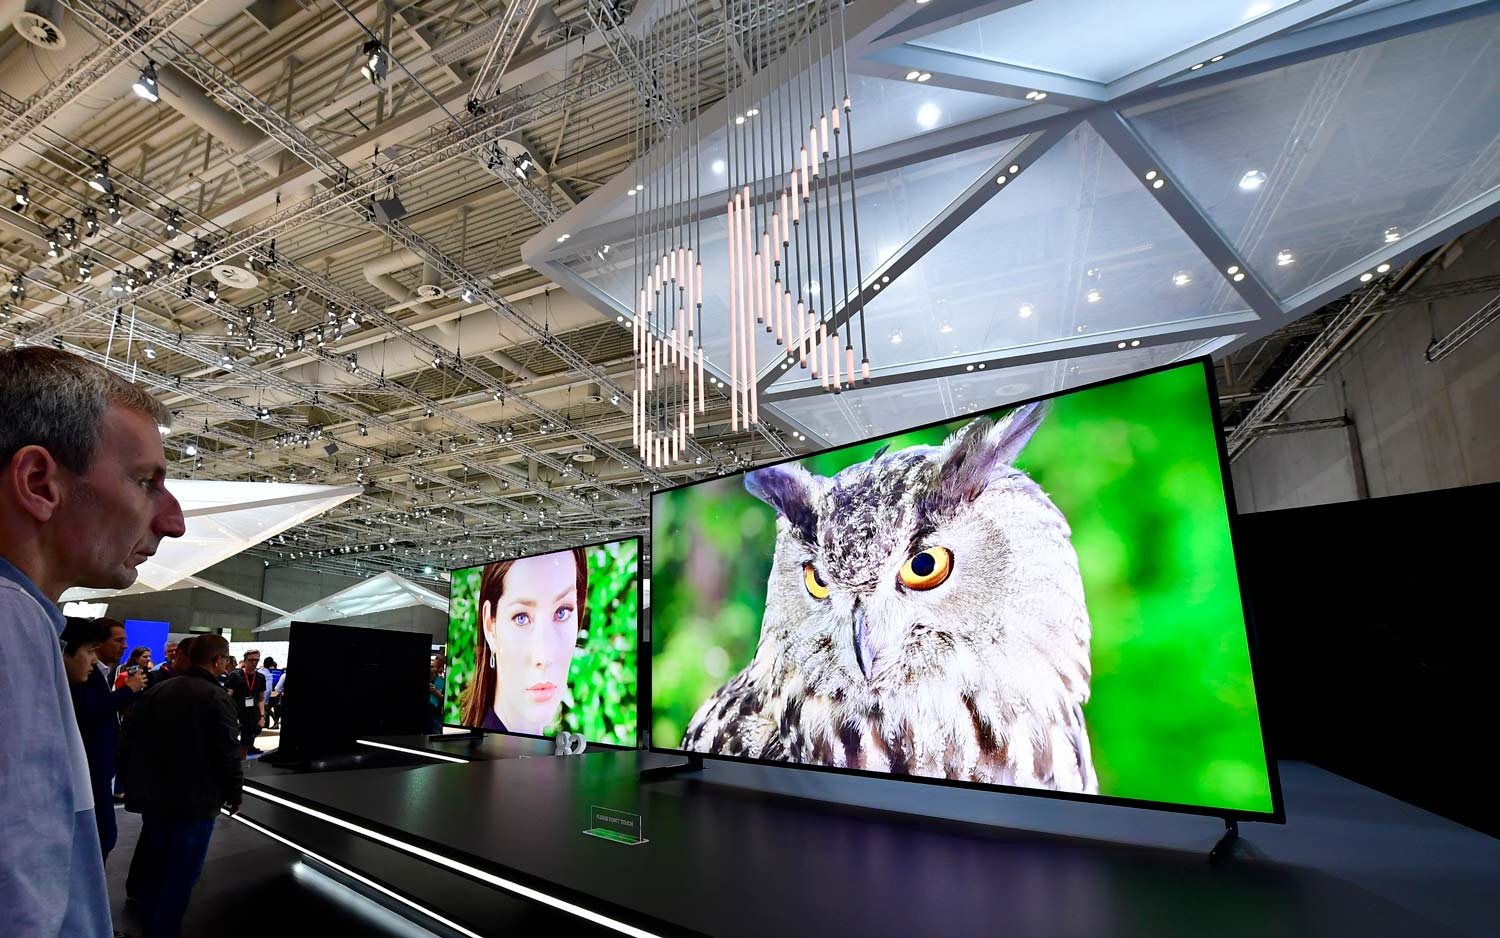 8K TVs Are Here Already: What You Need to Know | Tom's Guide